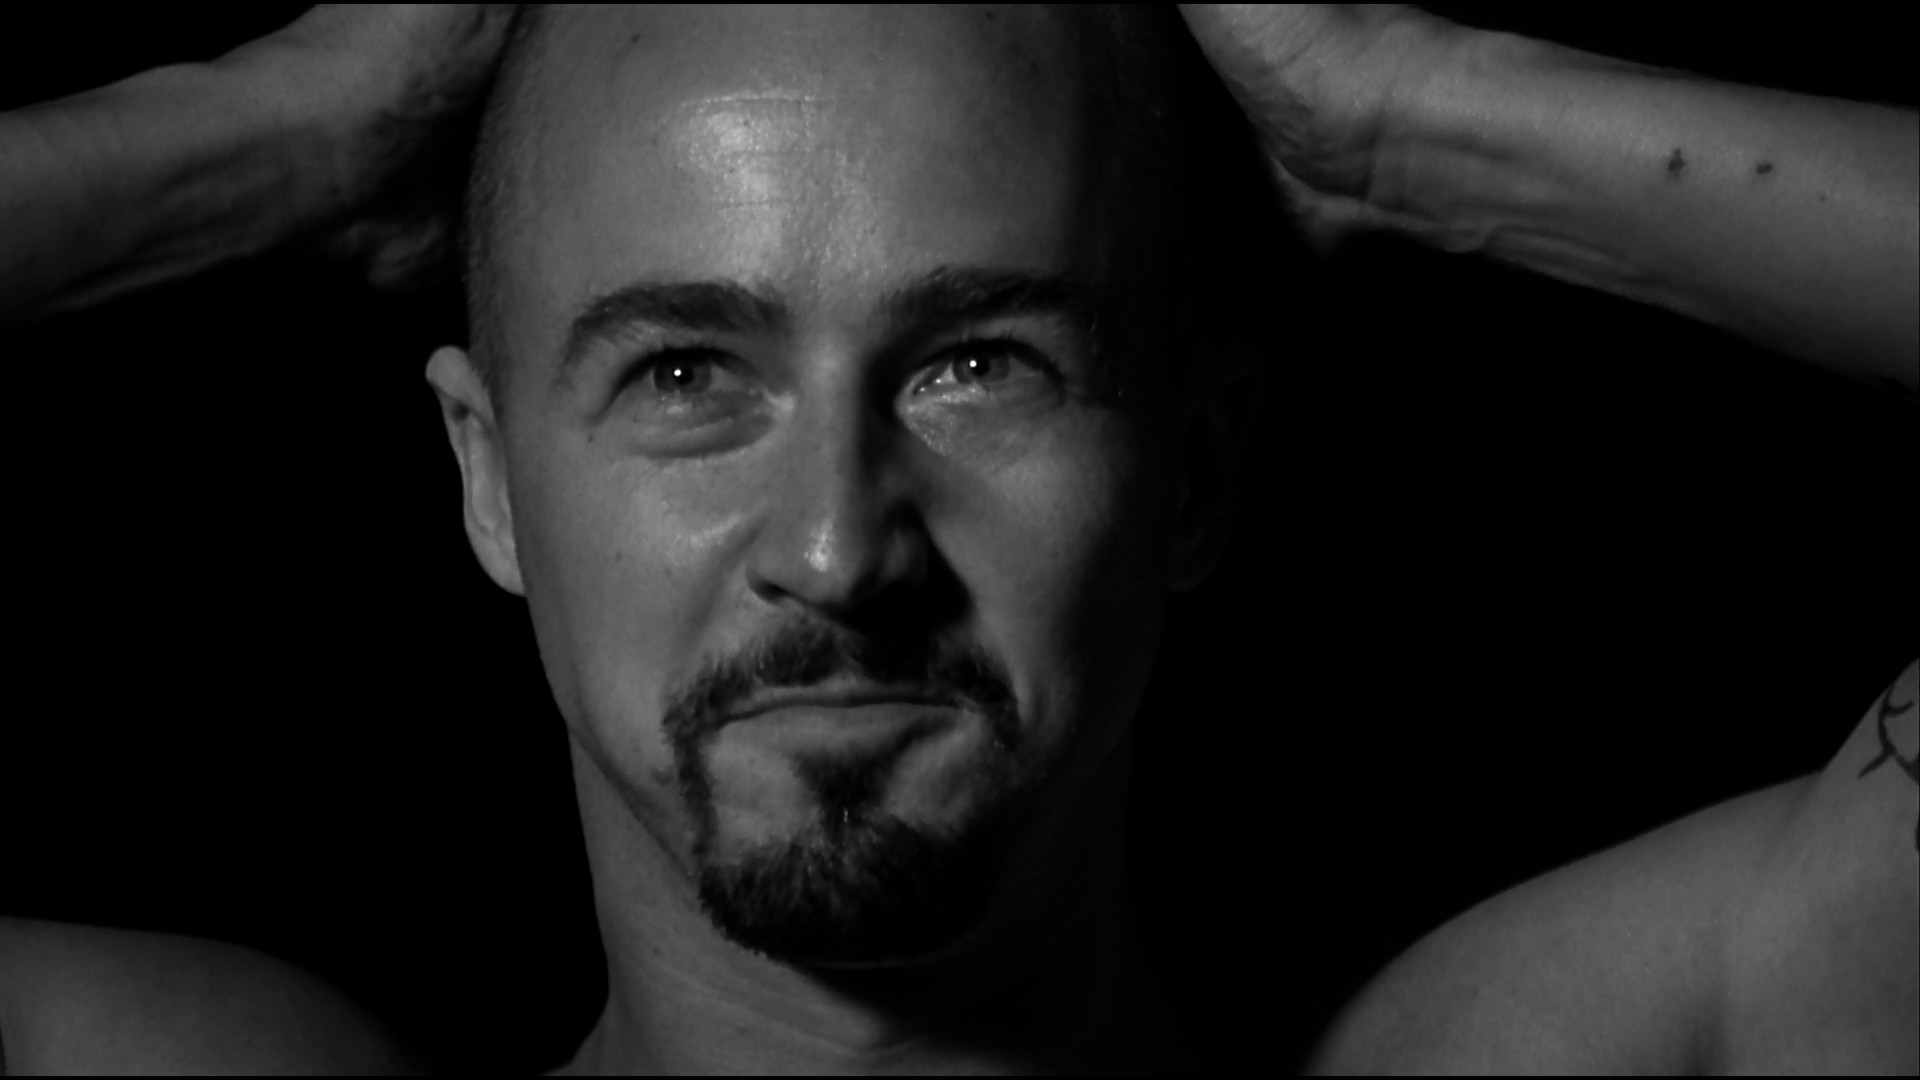 1920x1080 9 American History X HD Wallpapers | Backgrounds - Wallpaper Abyss